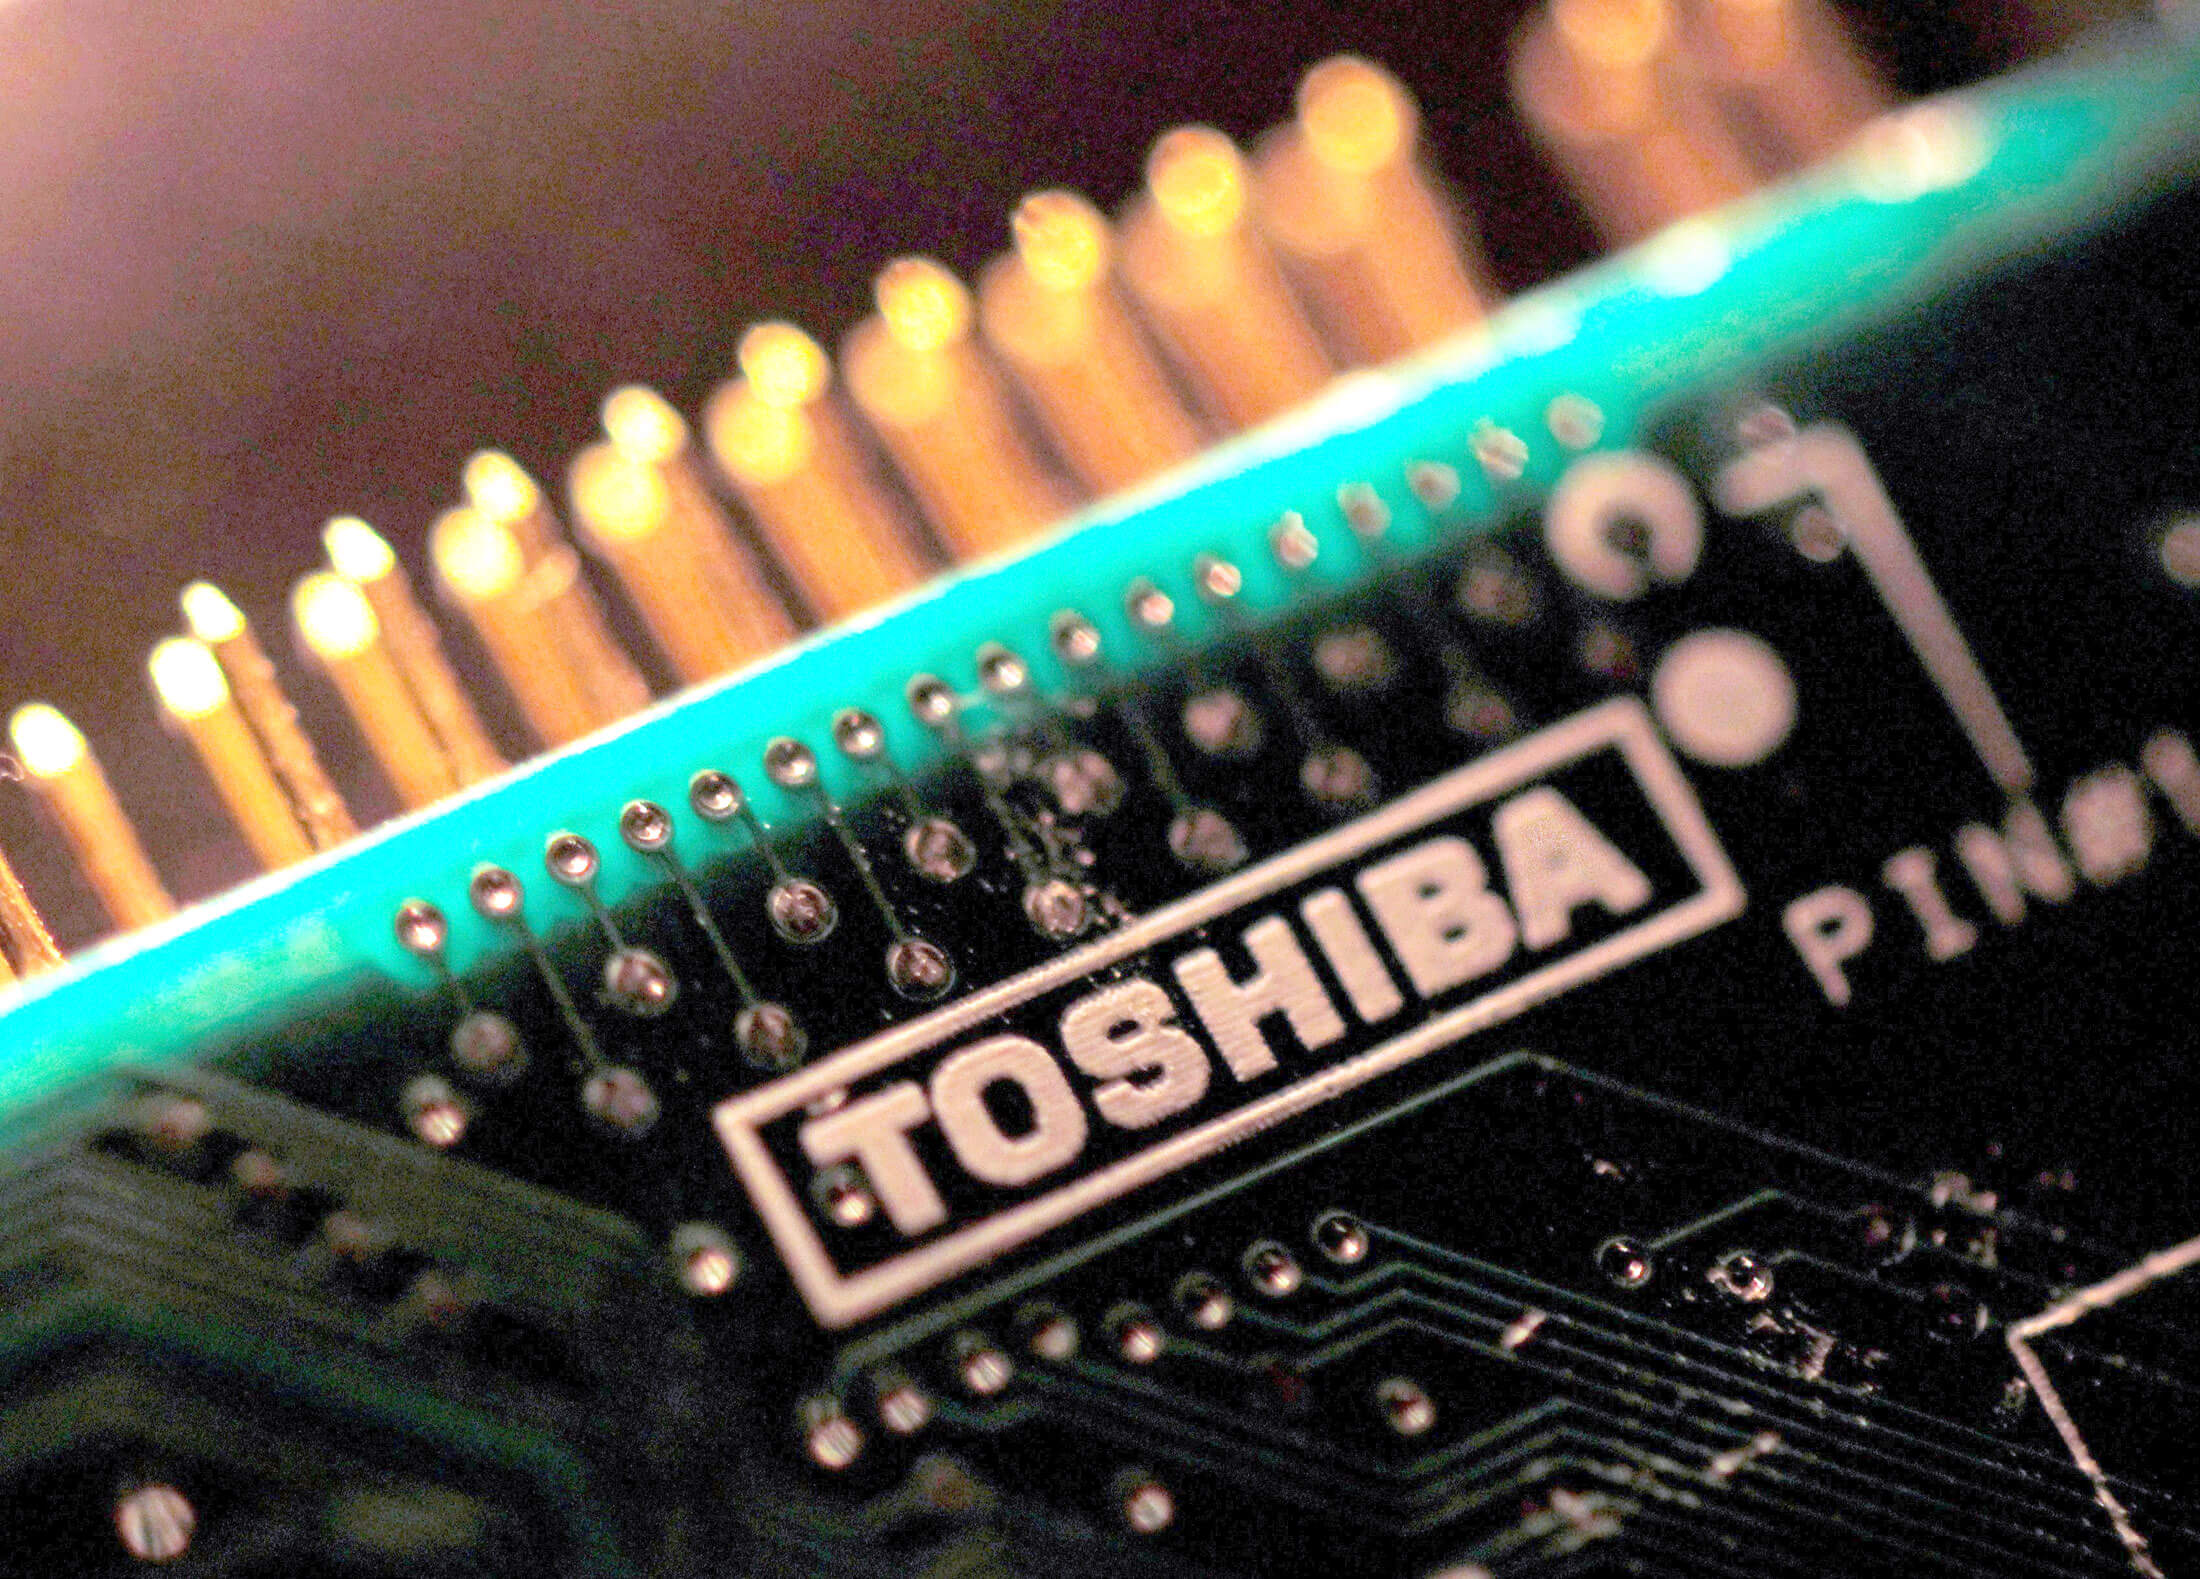 Toshiba's chip division receives approval for $18 billion sale to Bain consortium